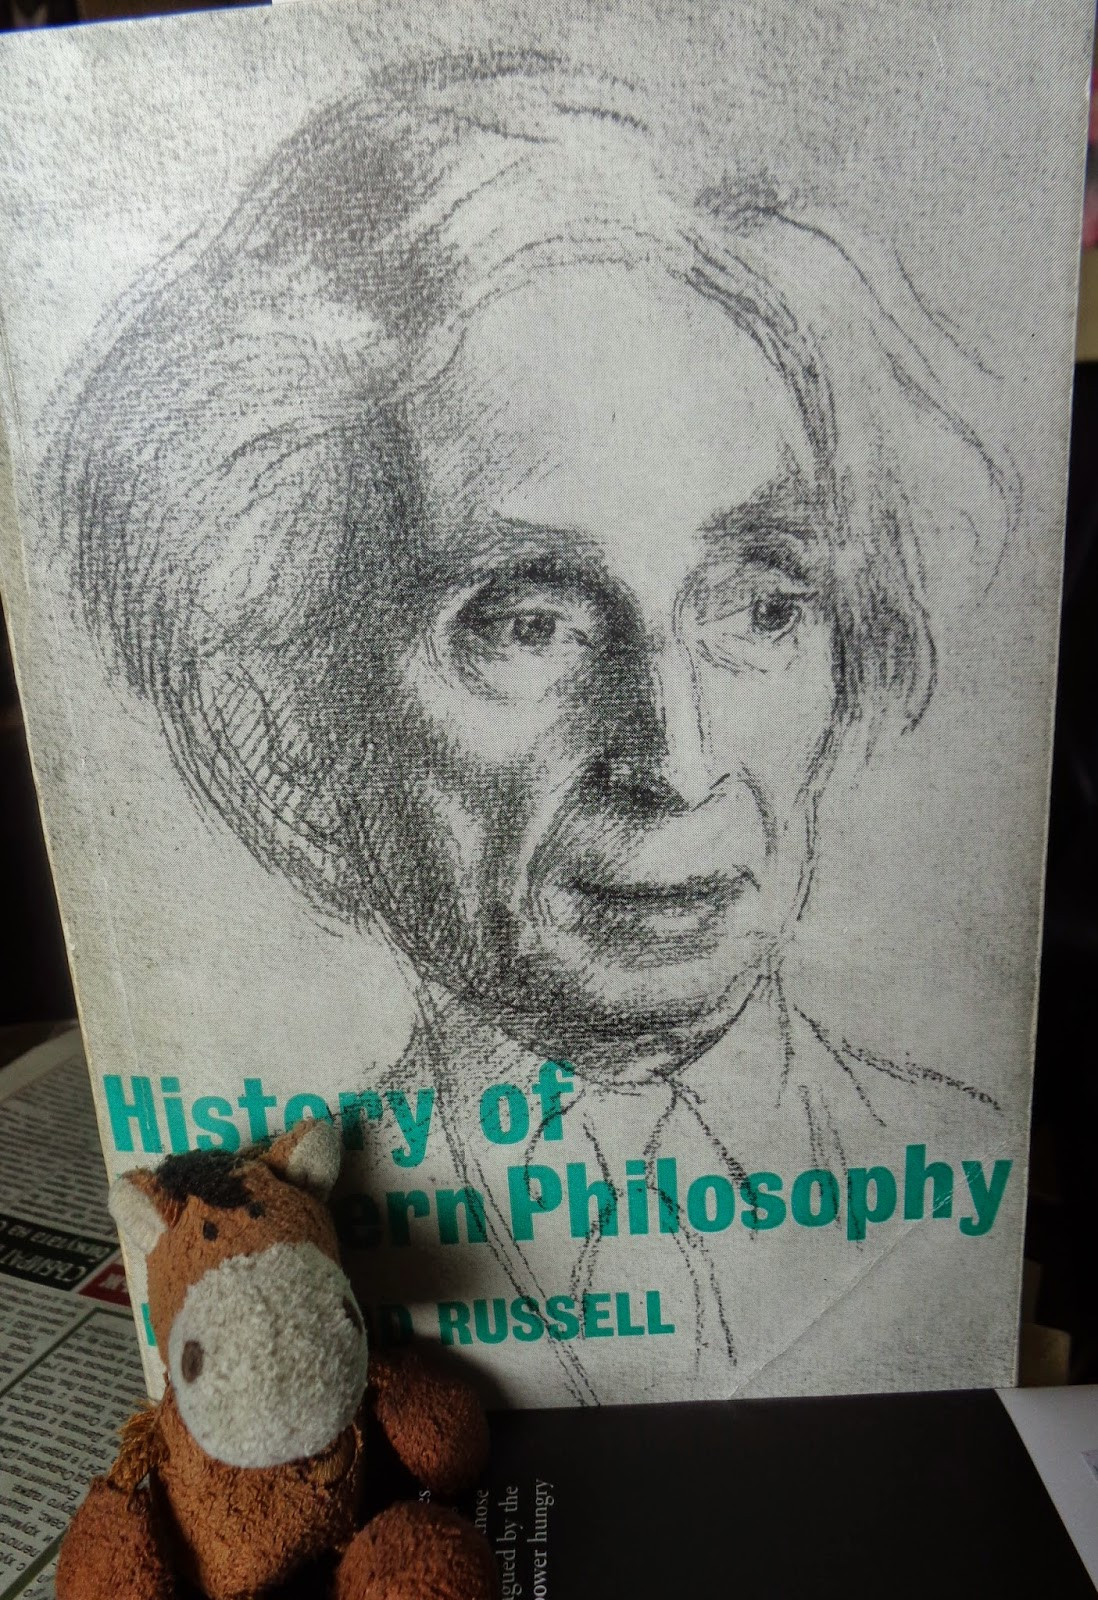 critique of the bertrand russell value of philosophy Unpopular essays by bertrand russell new york: simon and schuster inc, 1950  as closer to physics and chemistry than religion or value theory philosophy, in his.